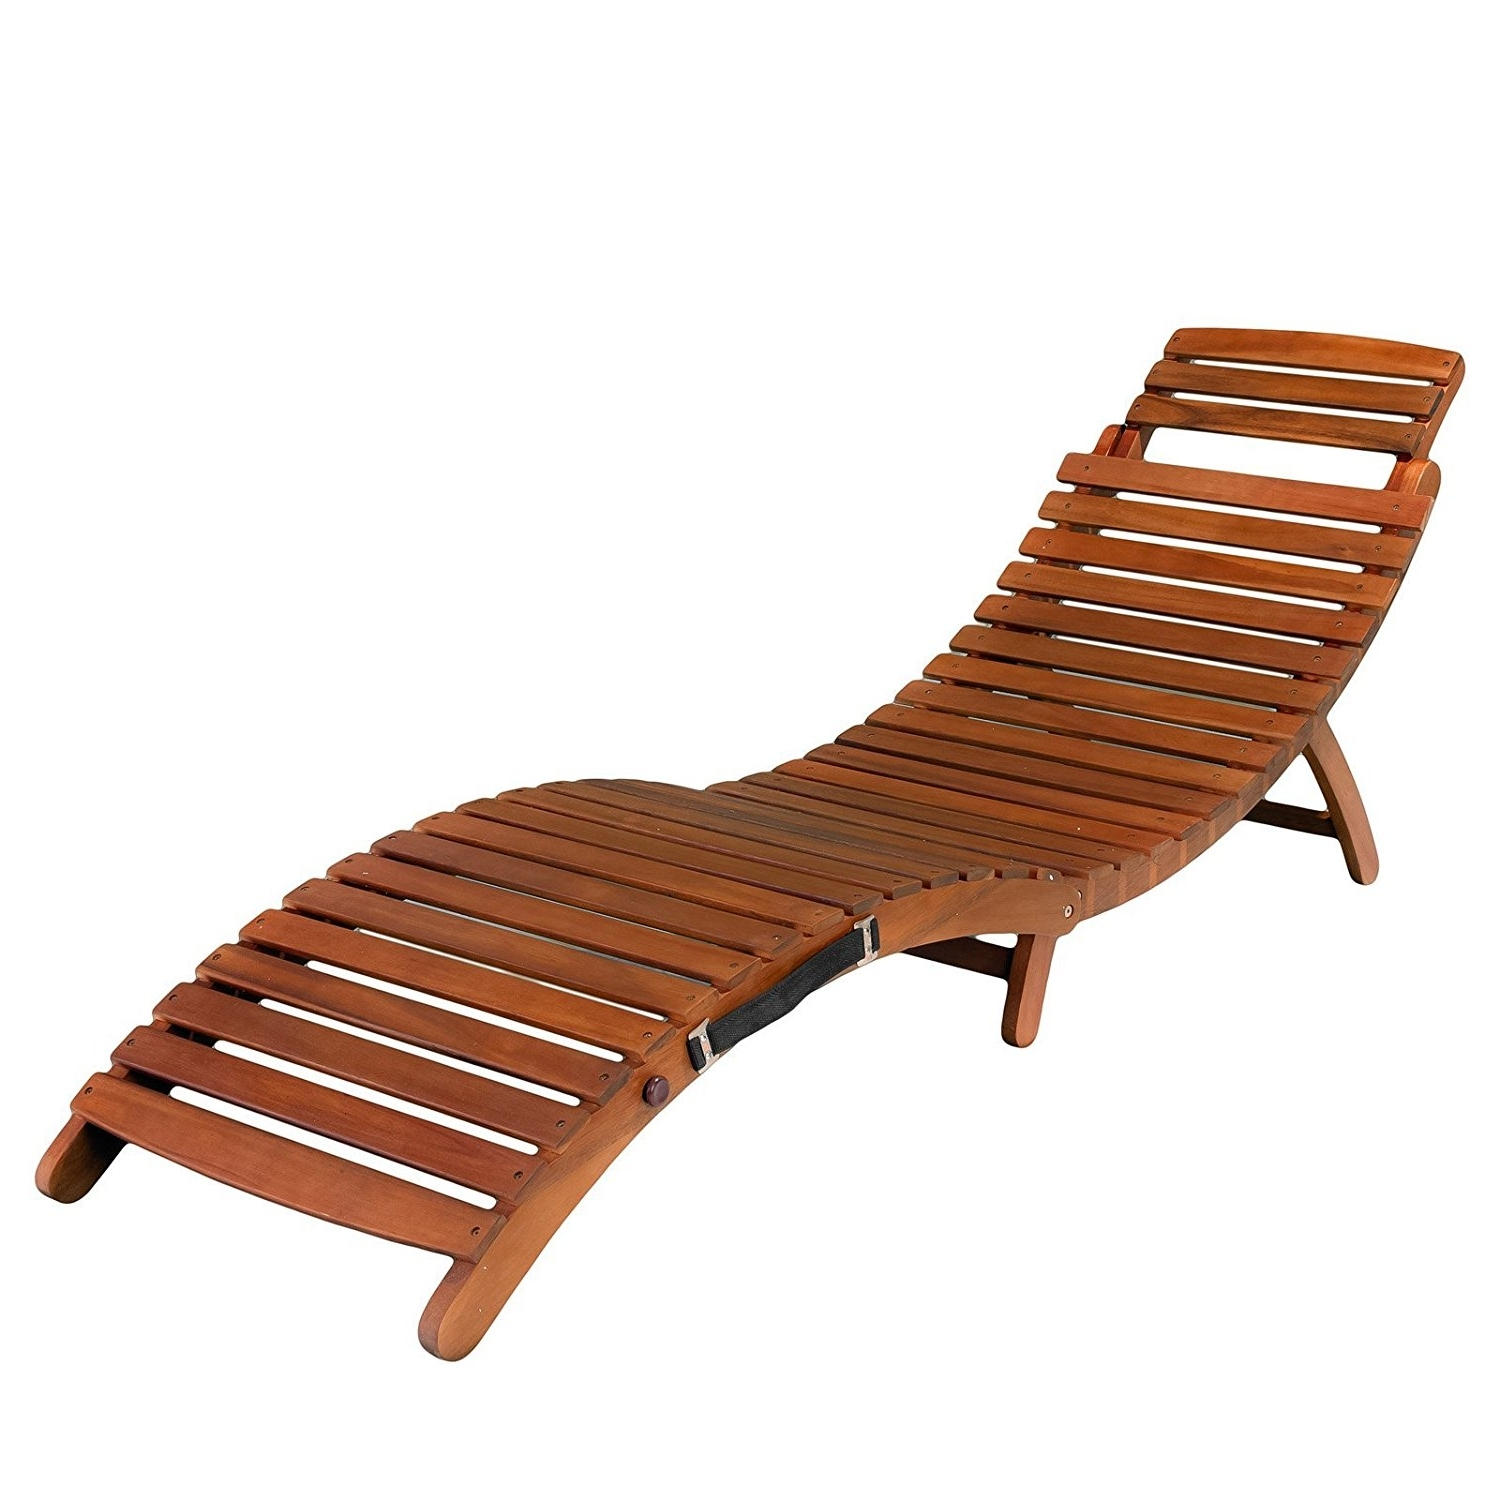 chaise lounge lounges wooden outdoor best chair home larger wicker selling view decor